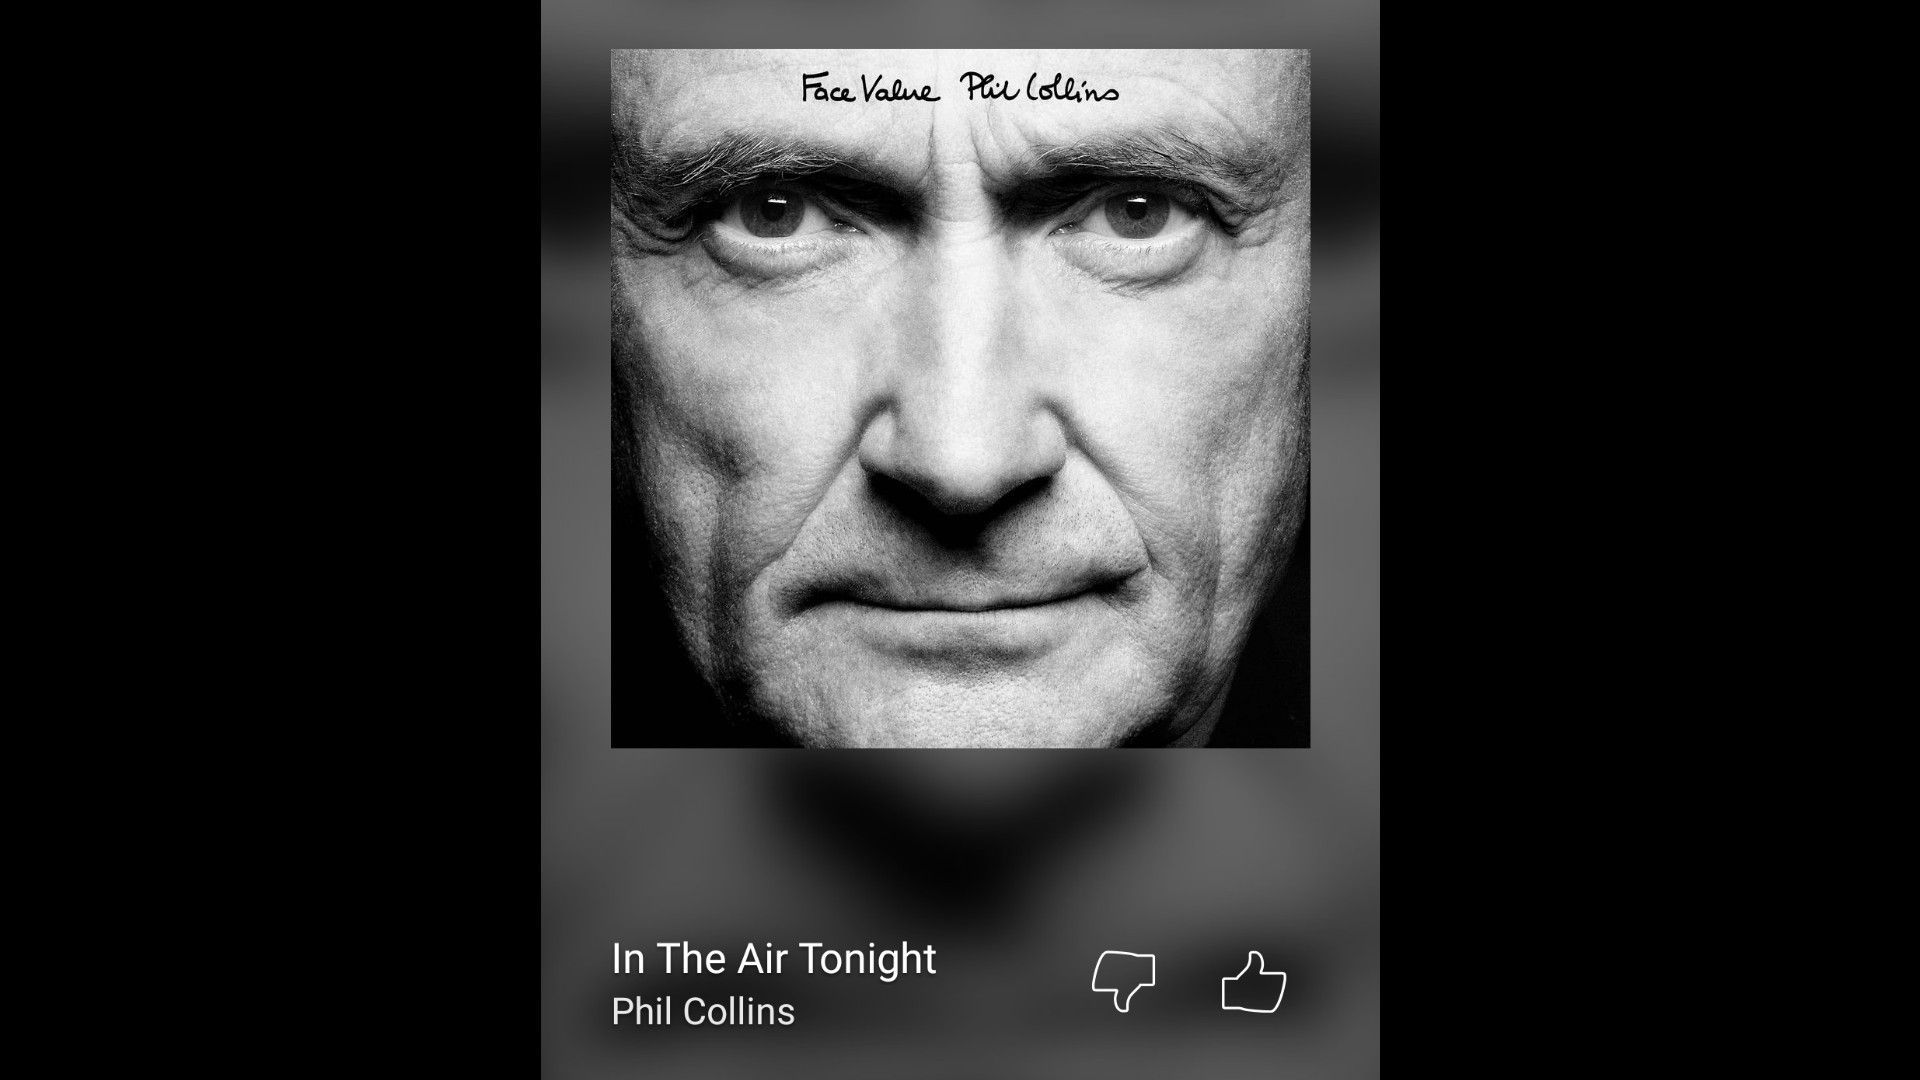 Pin by Amon Davis on Love of music Phil collins, In the